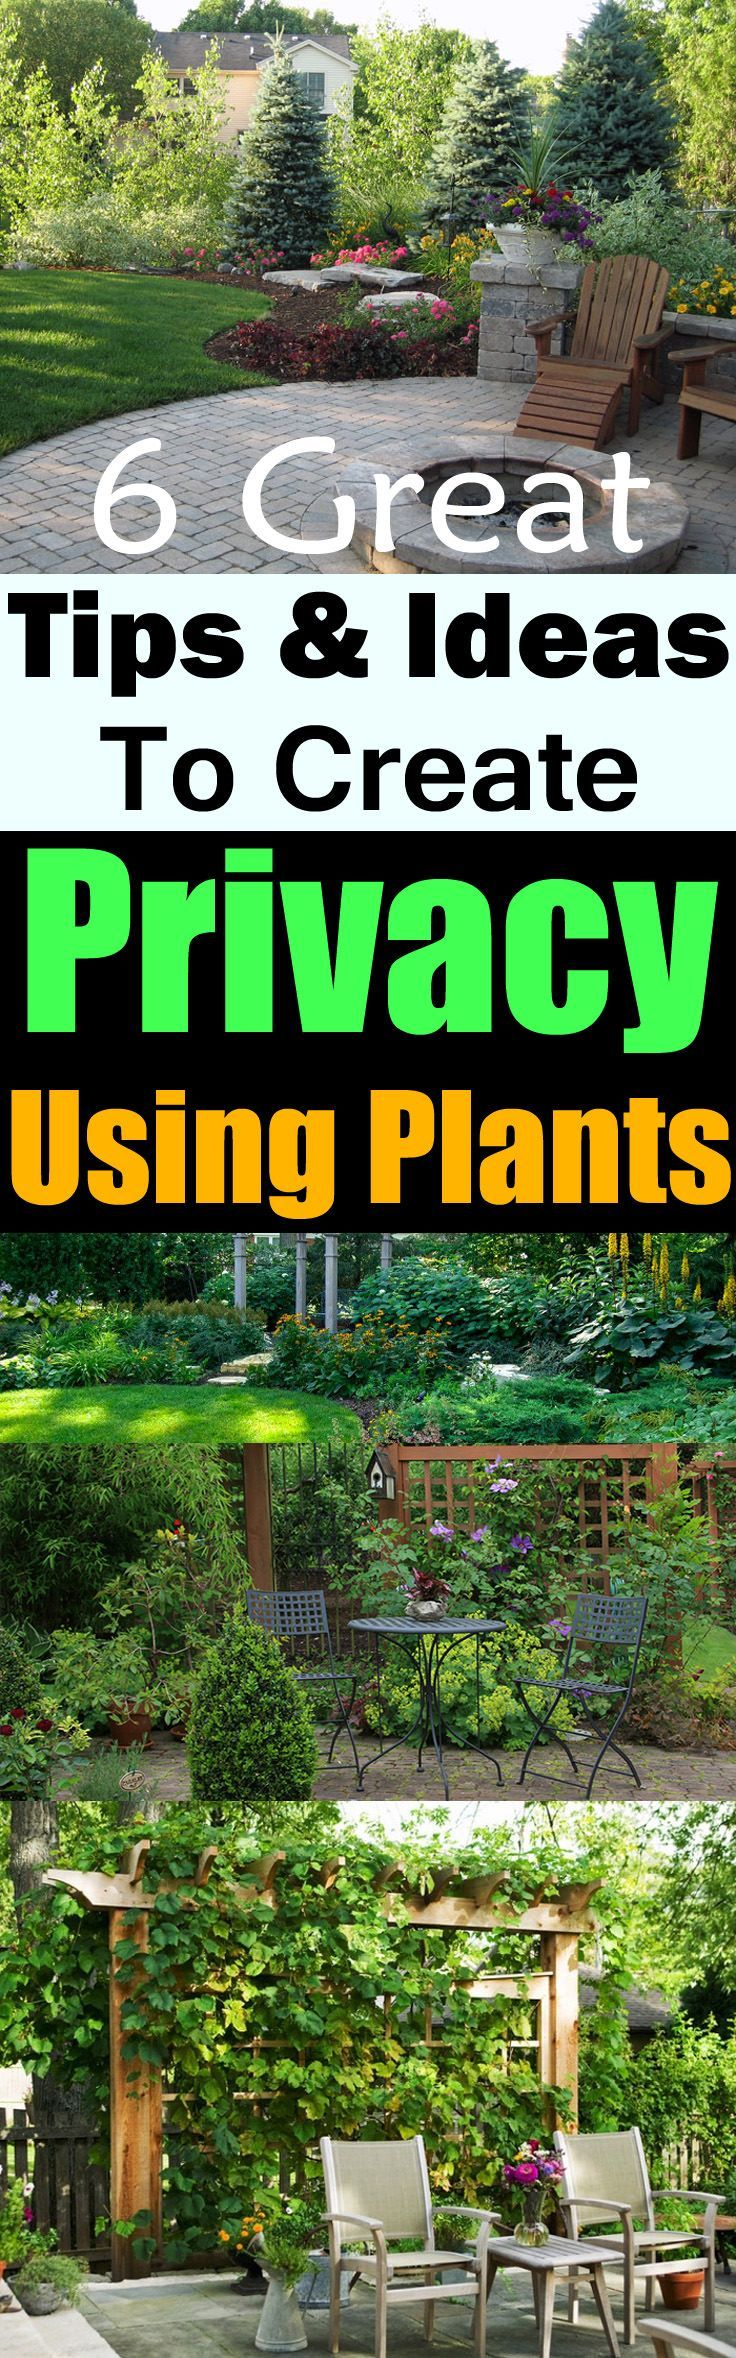 If you want to create privacy to save yourself from prying eyes, Use plants…